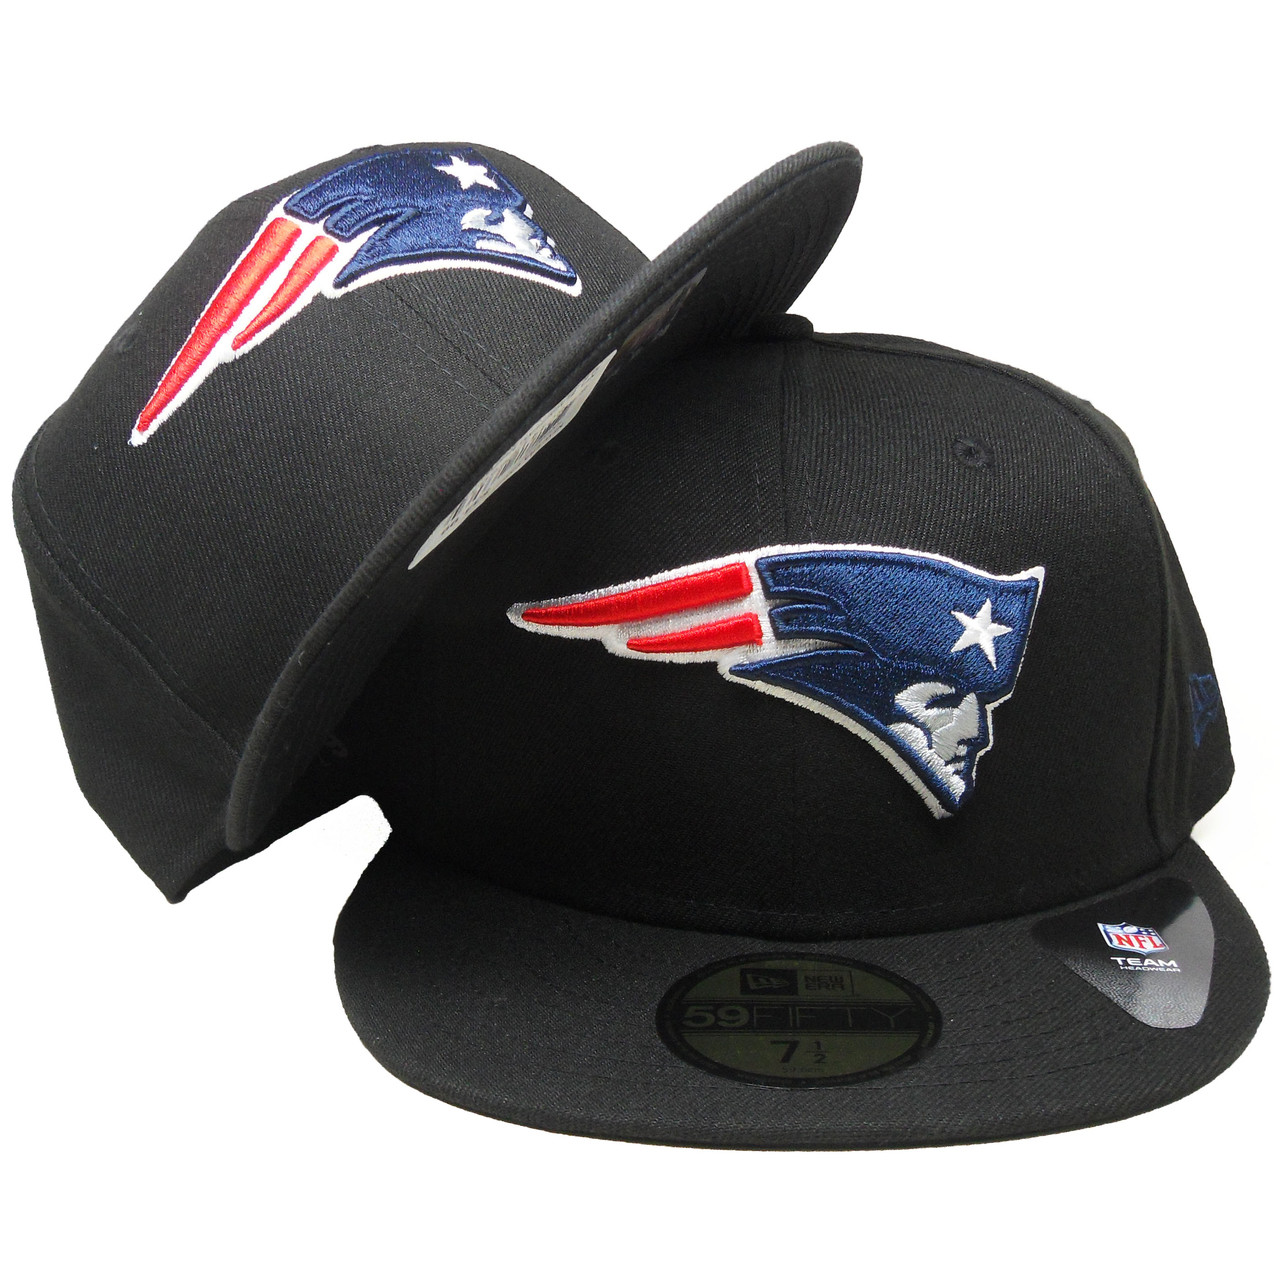 1a472446e New England Patriots New Era 59Fifty Fitted Hat - Black, Navy, Red, White